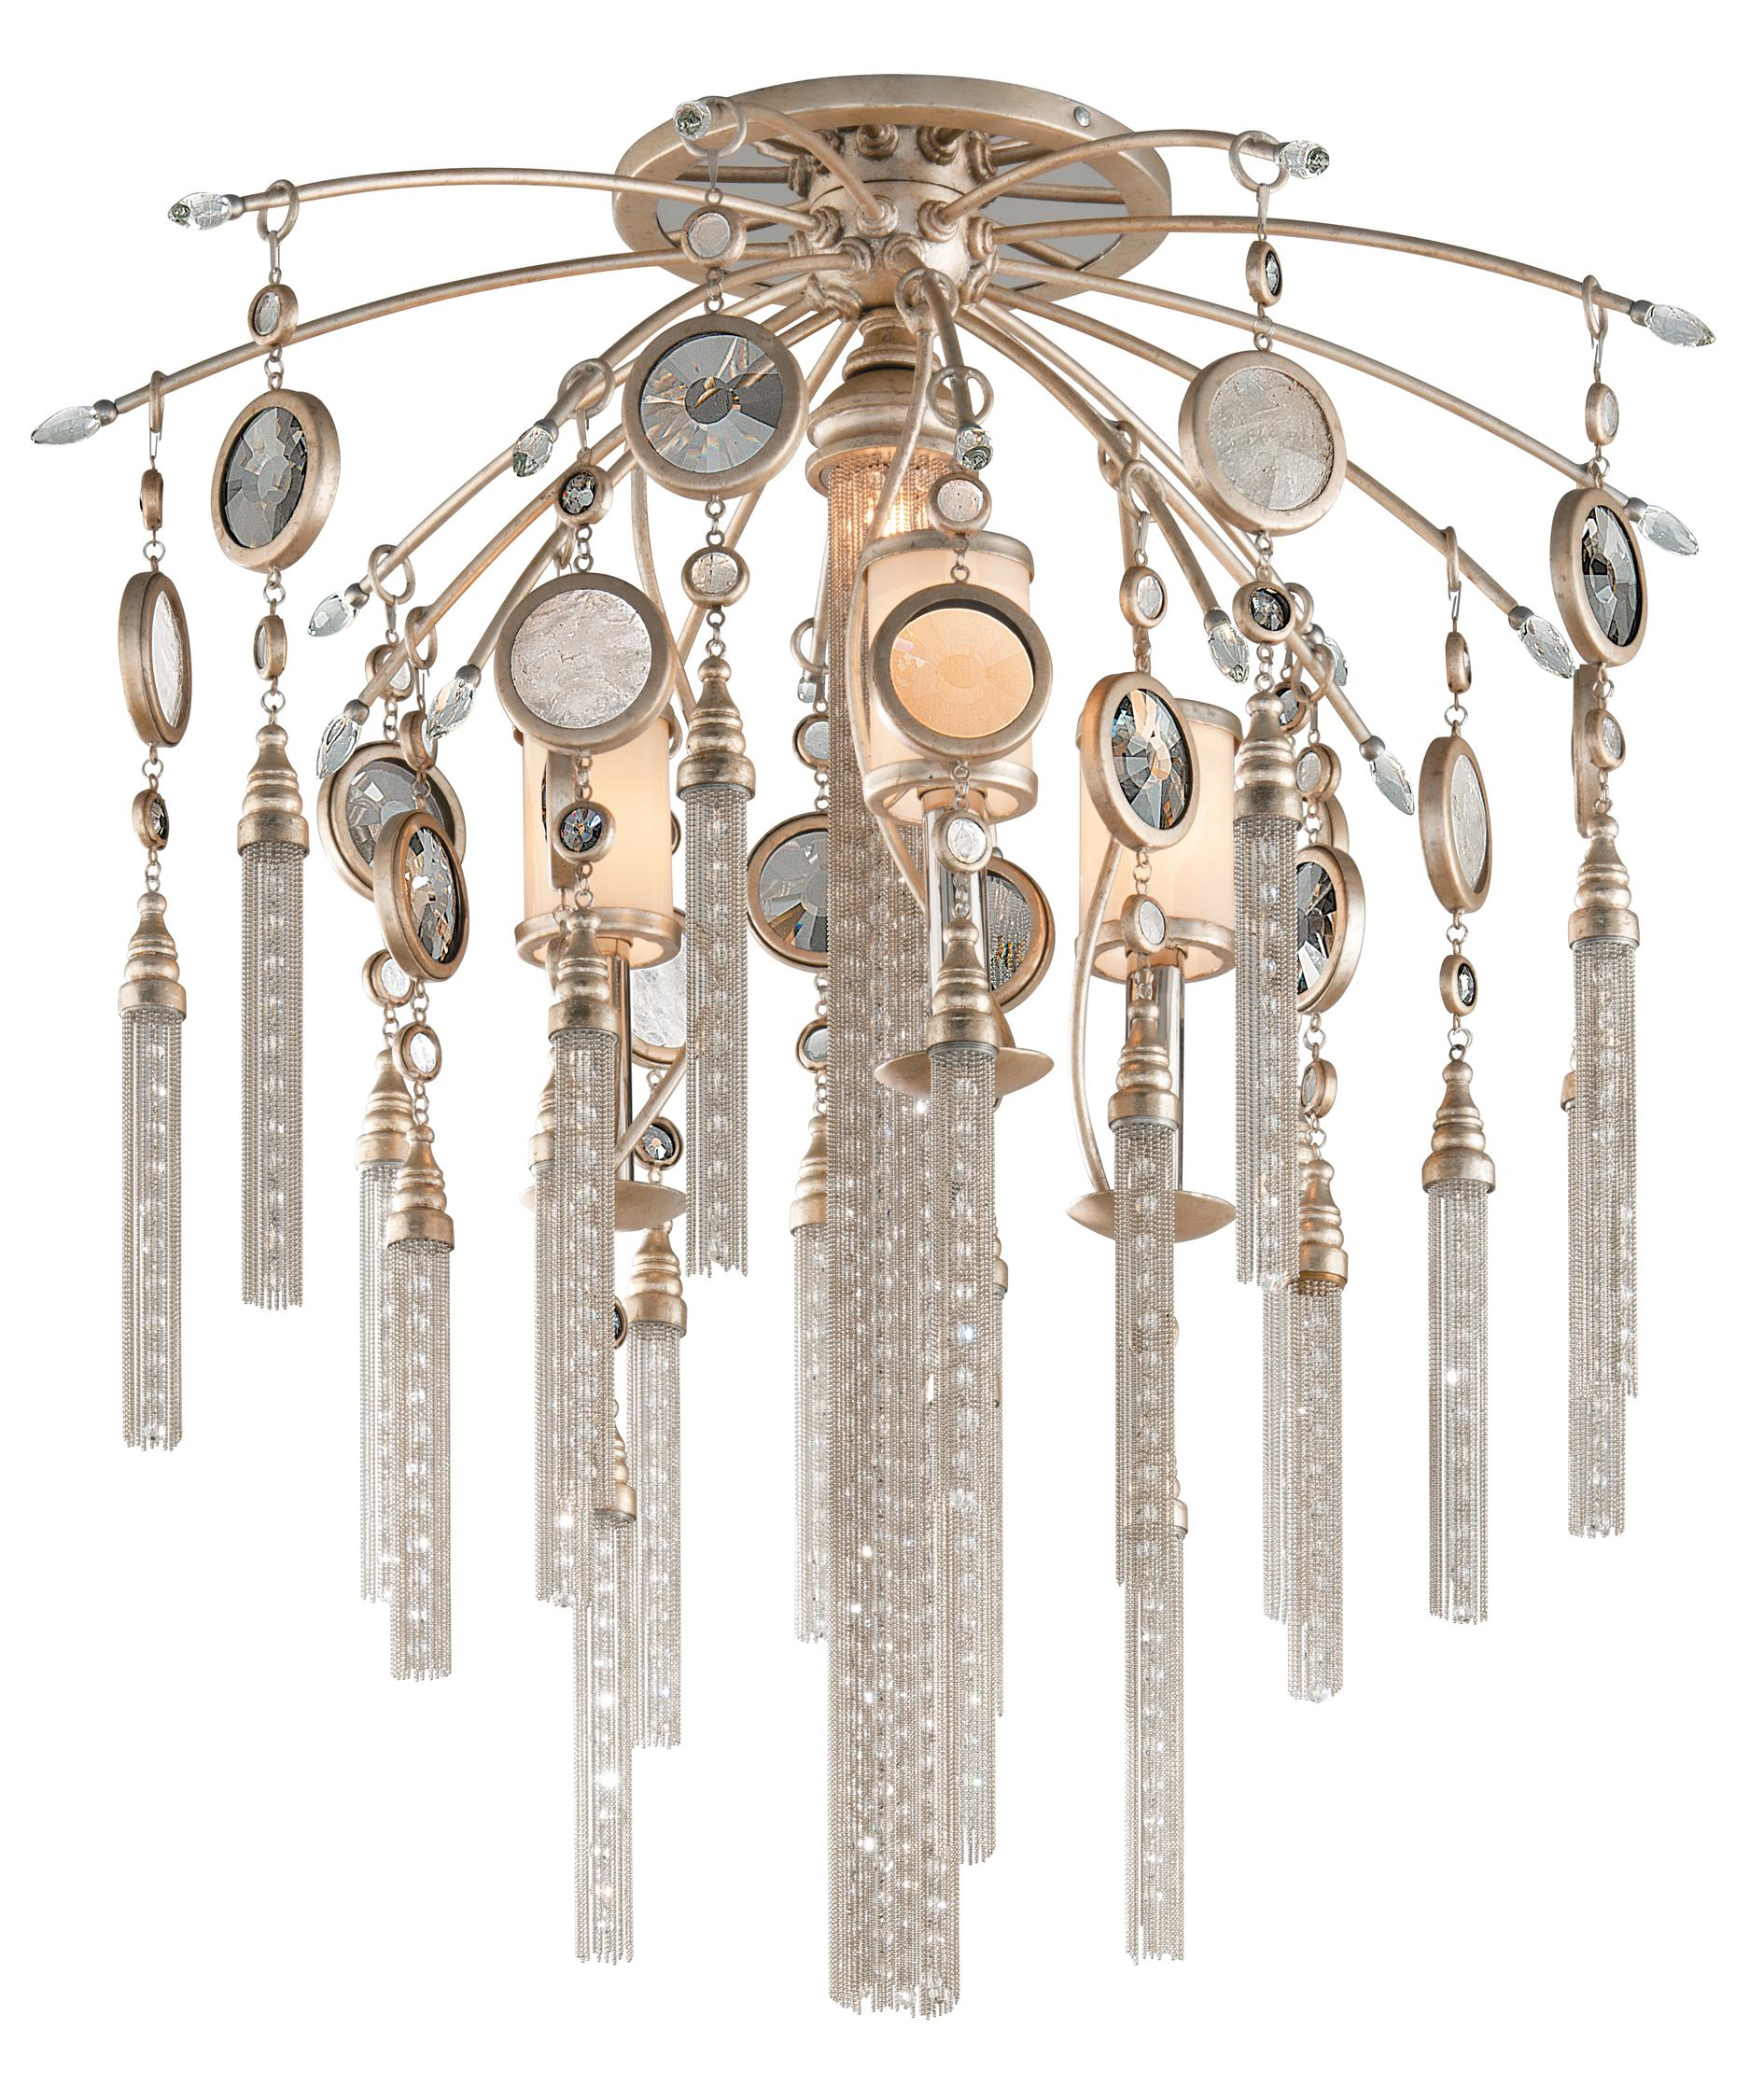 shown in topaz leaf finish brazilian rock crystals crystal smoked crystal medallions glass - Corbett Lighting